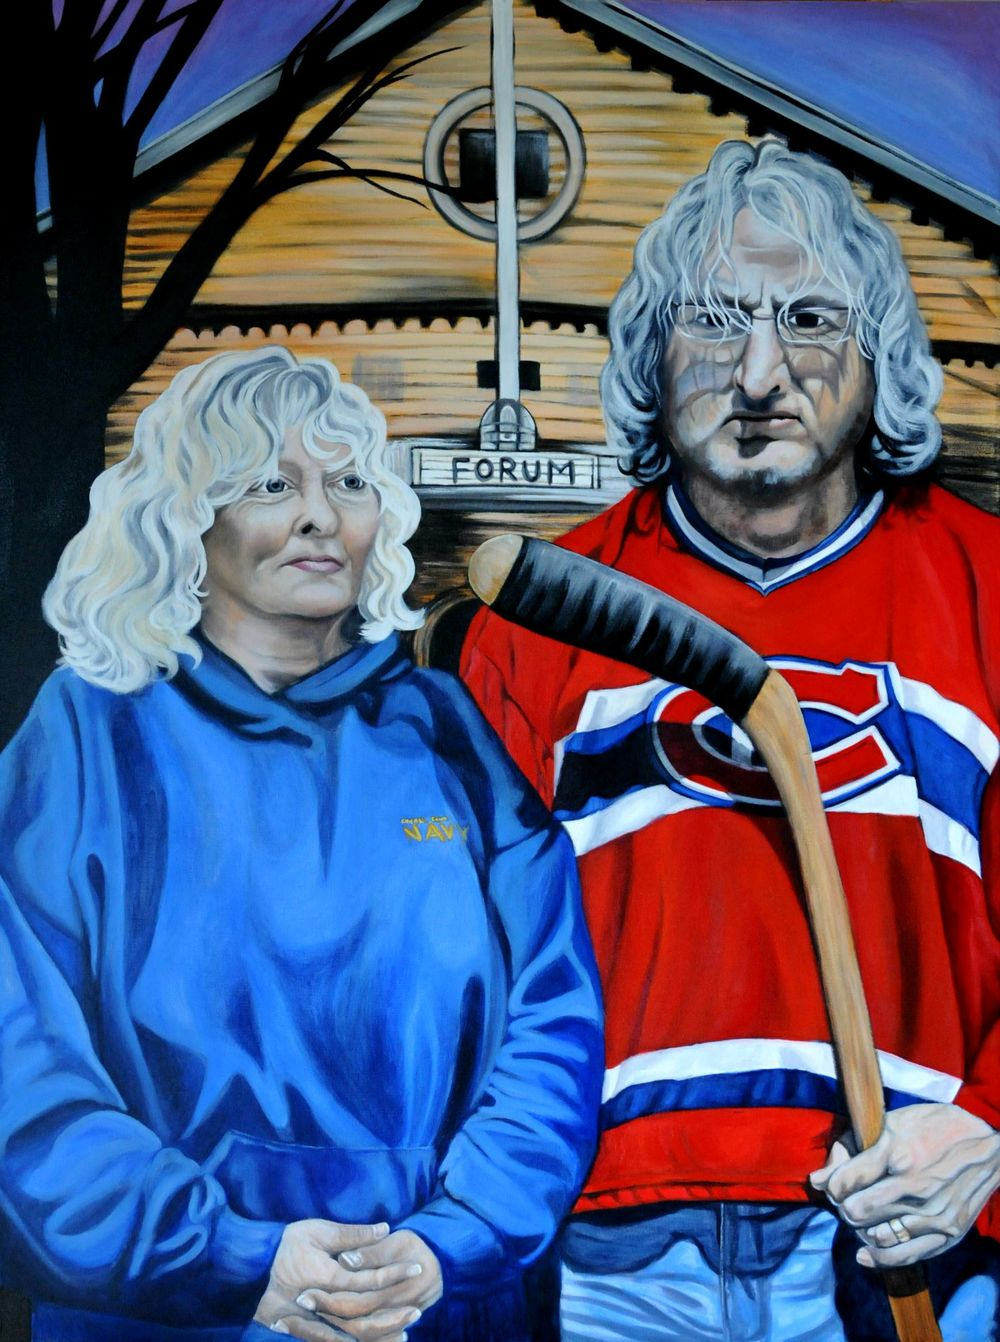 Canadiens Gothic acrylic on canvas 2014 - Brandy Saturley - Canadian social surrealism